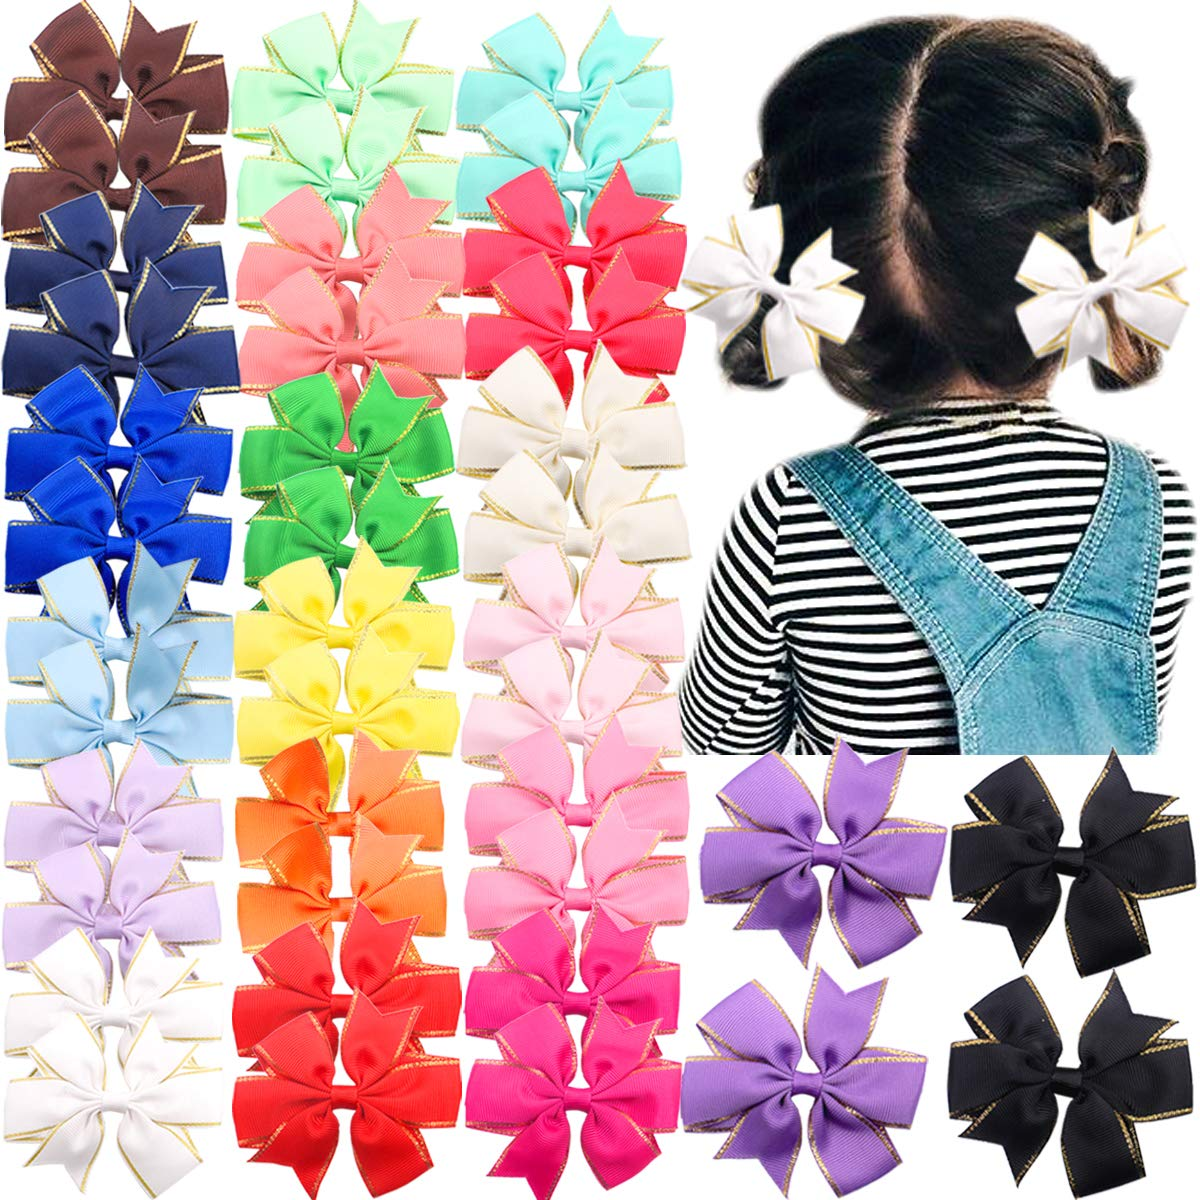 40 Pieces Baby Girl Hair Bows Clips Boutique Grosgrain Ribbon Pinwheel Bows Alligator Clips Hair Accessories for Girls Kids and Toddlers in Pairs